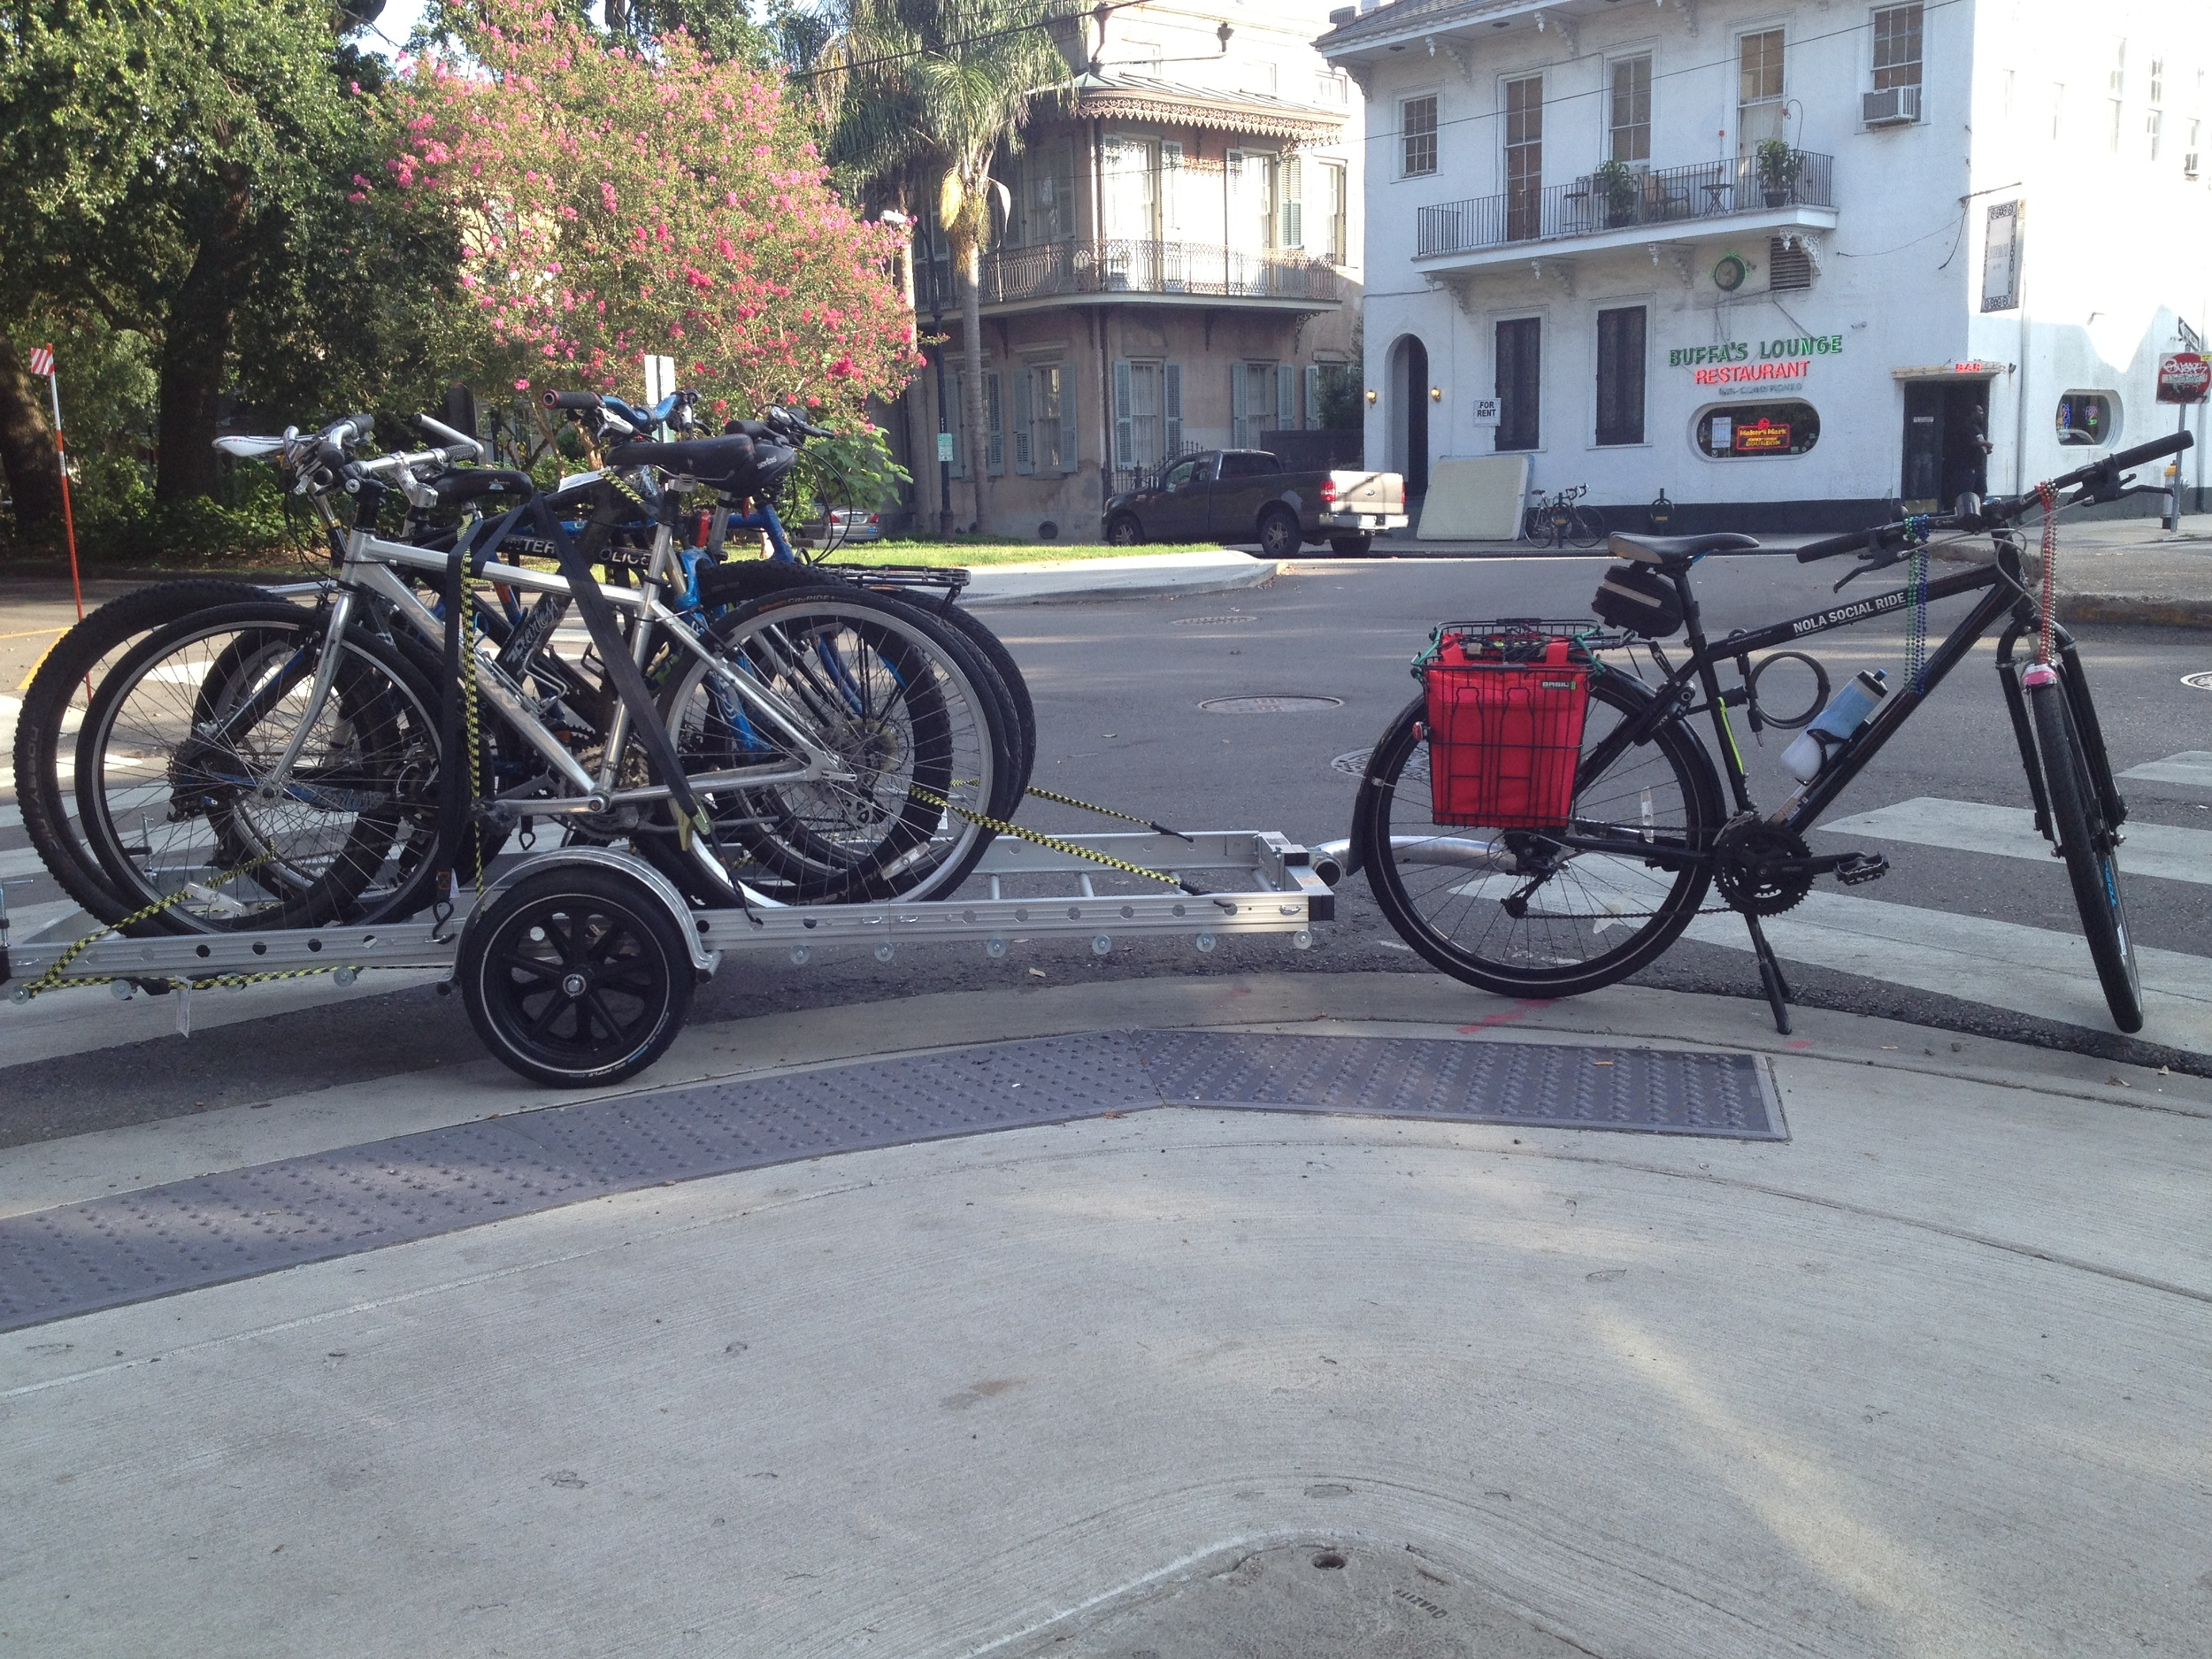 Four bikes on the trailer.  Picture taken in front of Buffas Lounge